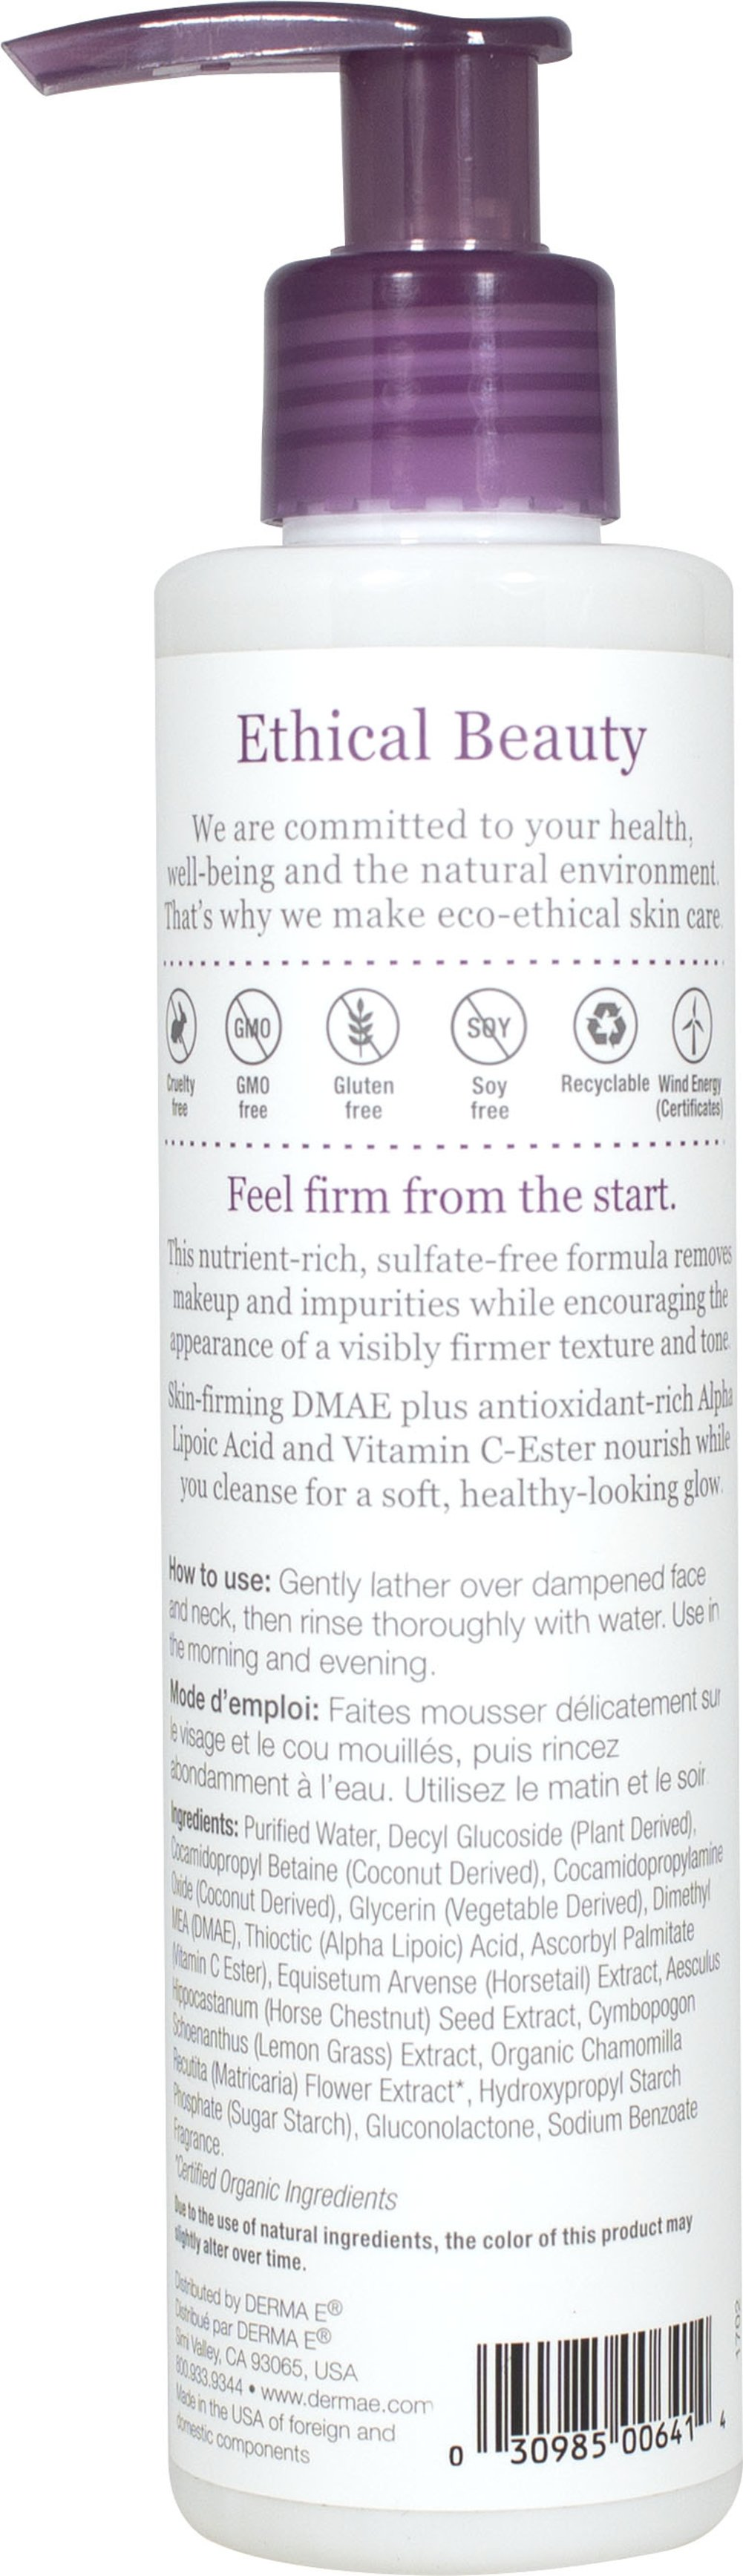 Derma E® DMAE, Alpha Lipoic, C-Ester Facial Cleanser Thumbnail Alternate Bottle View